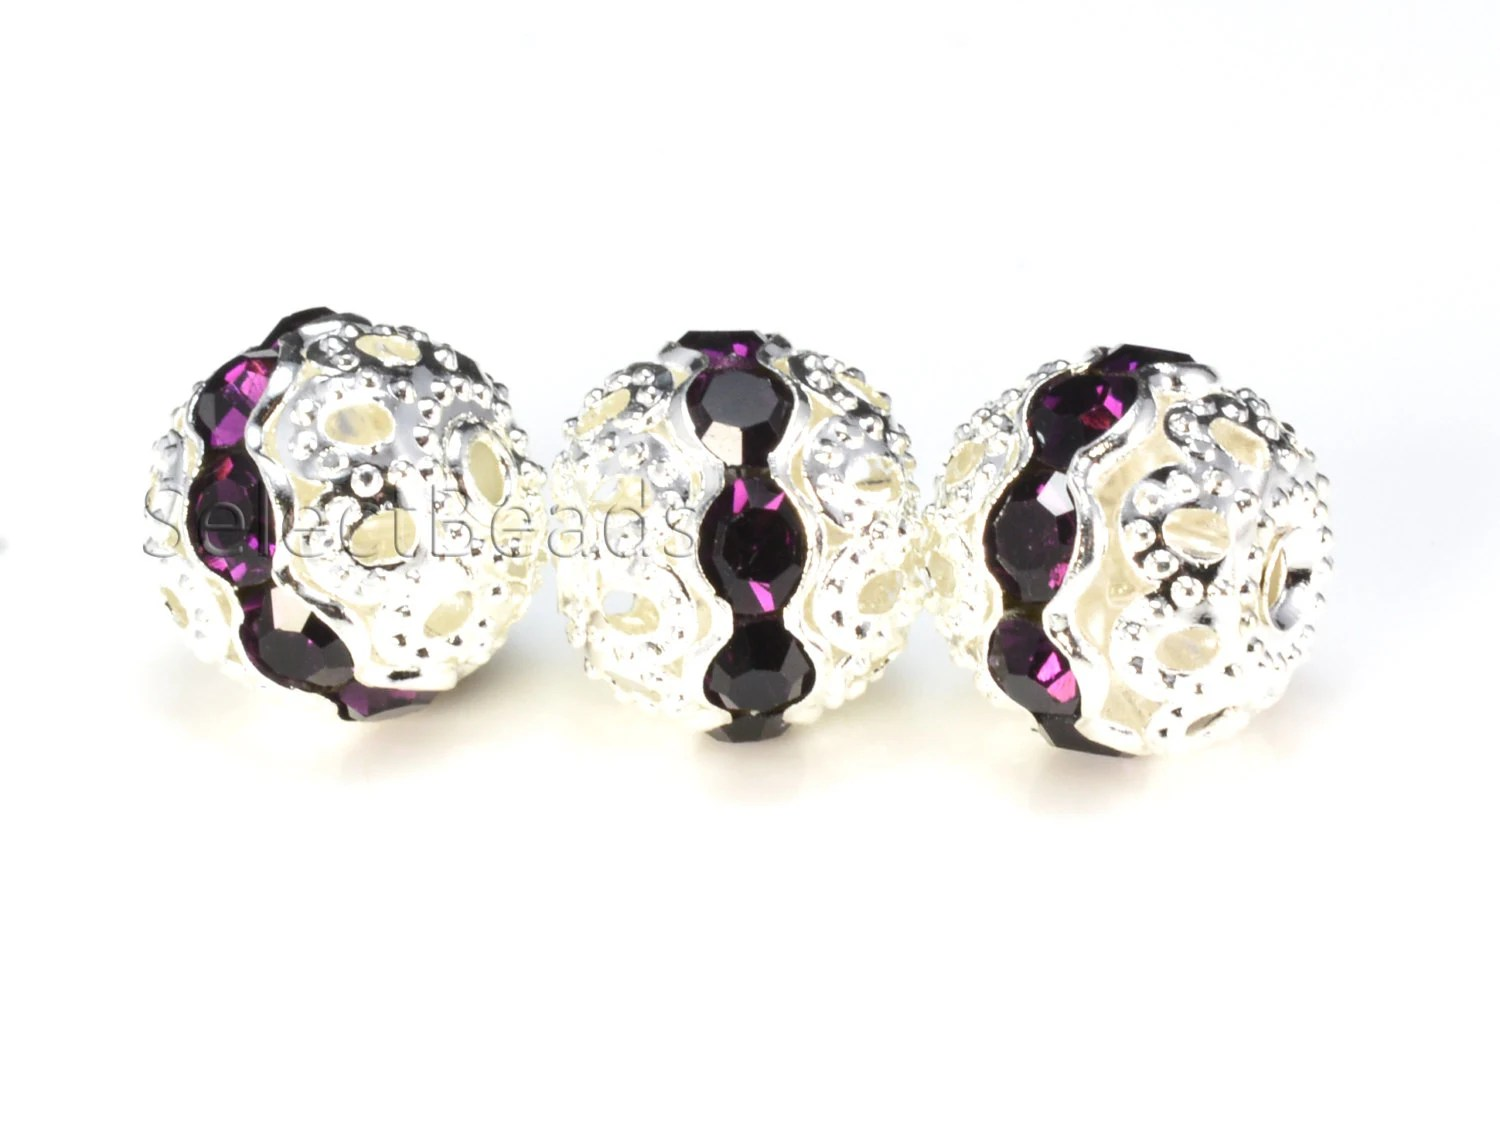 Rhinestone ball bead violet color silver plated 6 10mm for Craft and jewelry supplies